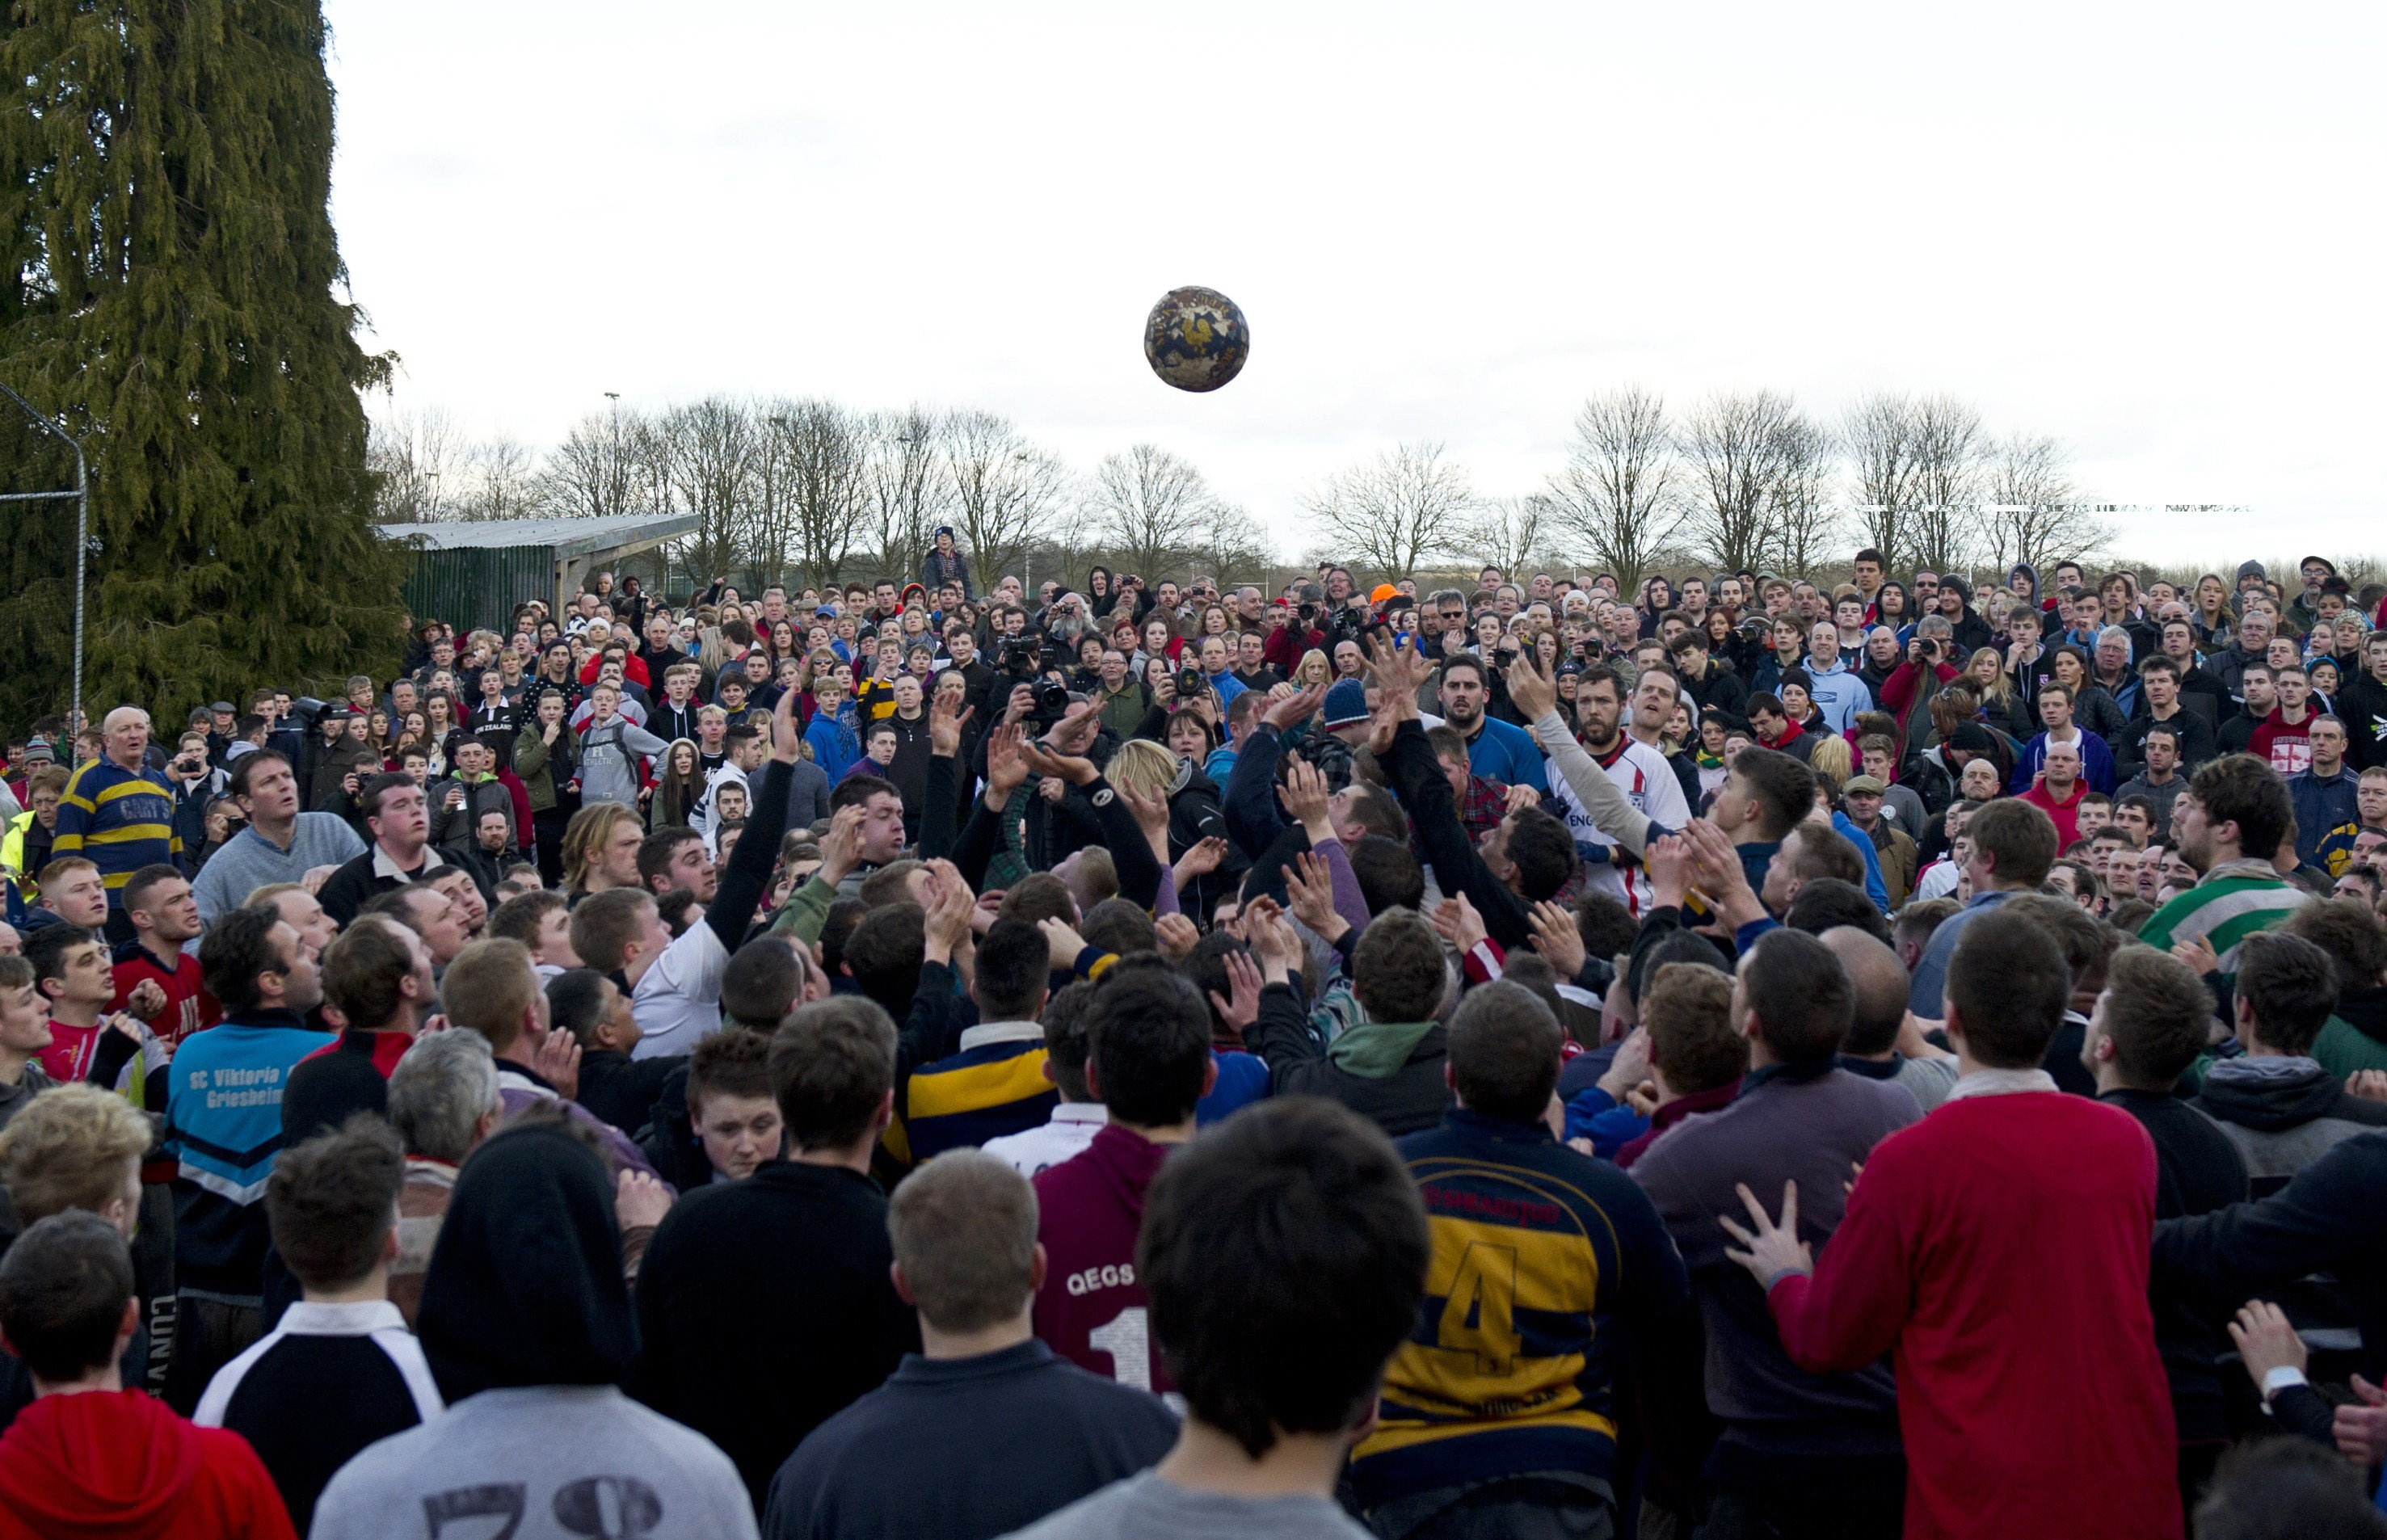 Opposing teams of the Up'ards and the Down'ards compete at the start of the annual Royal Shrovetide Football Match in Ashbourne, Derbyshire, England on February 17, 2015.